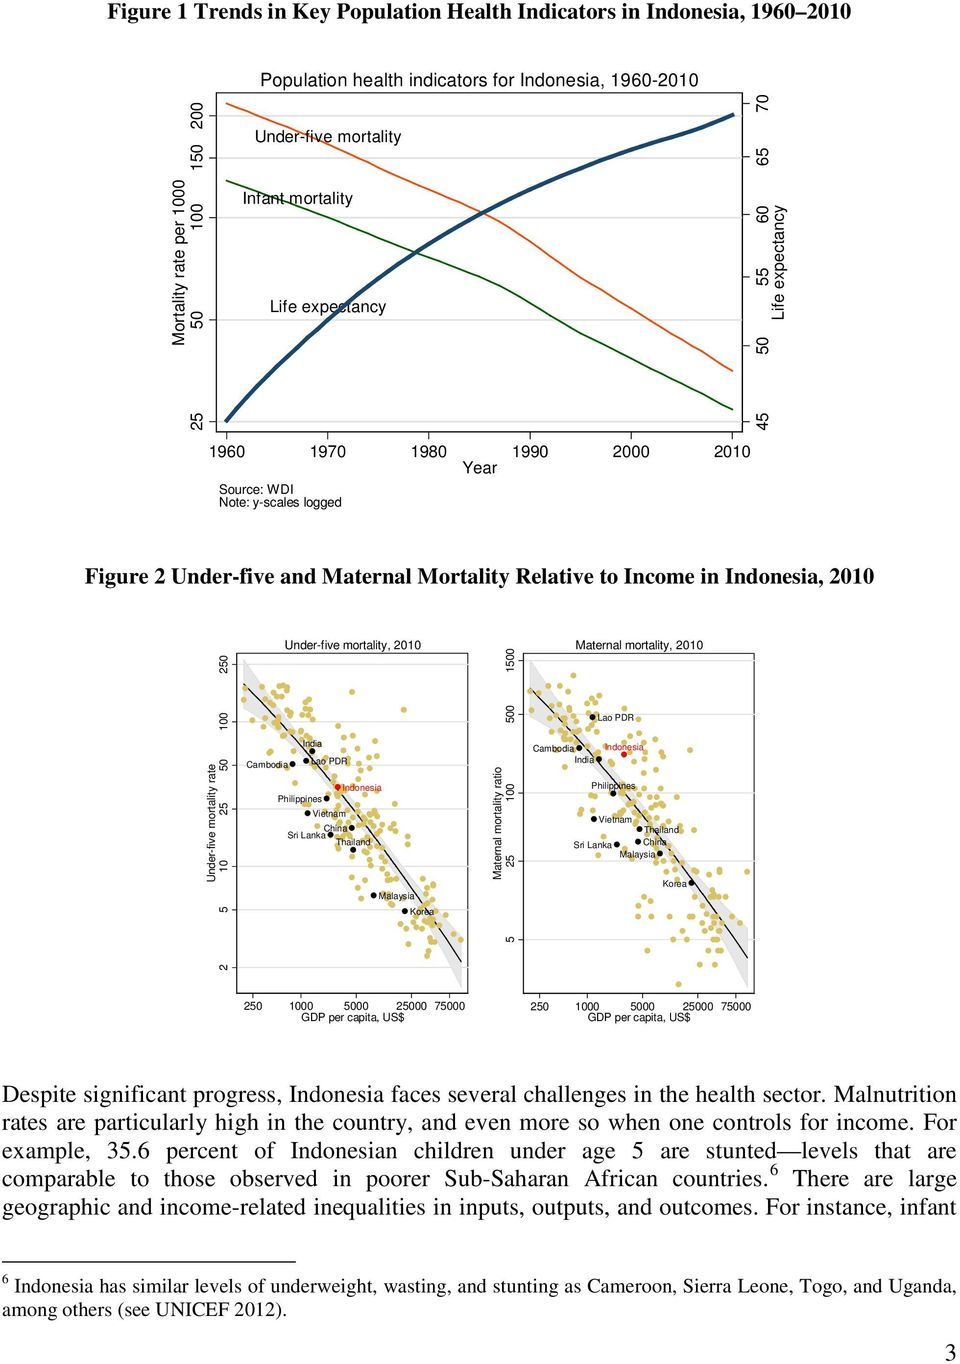 Indonesia, 2010 Under-five mortality rate 2 5 10 25 50 100 250 Under-five mortality, 2010 India Cambodia Lao PDR Indonesia Philippines Vietnam China Sri Lanka Thailand Malaysia Korea Maternal